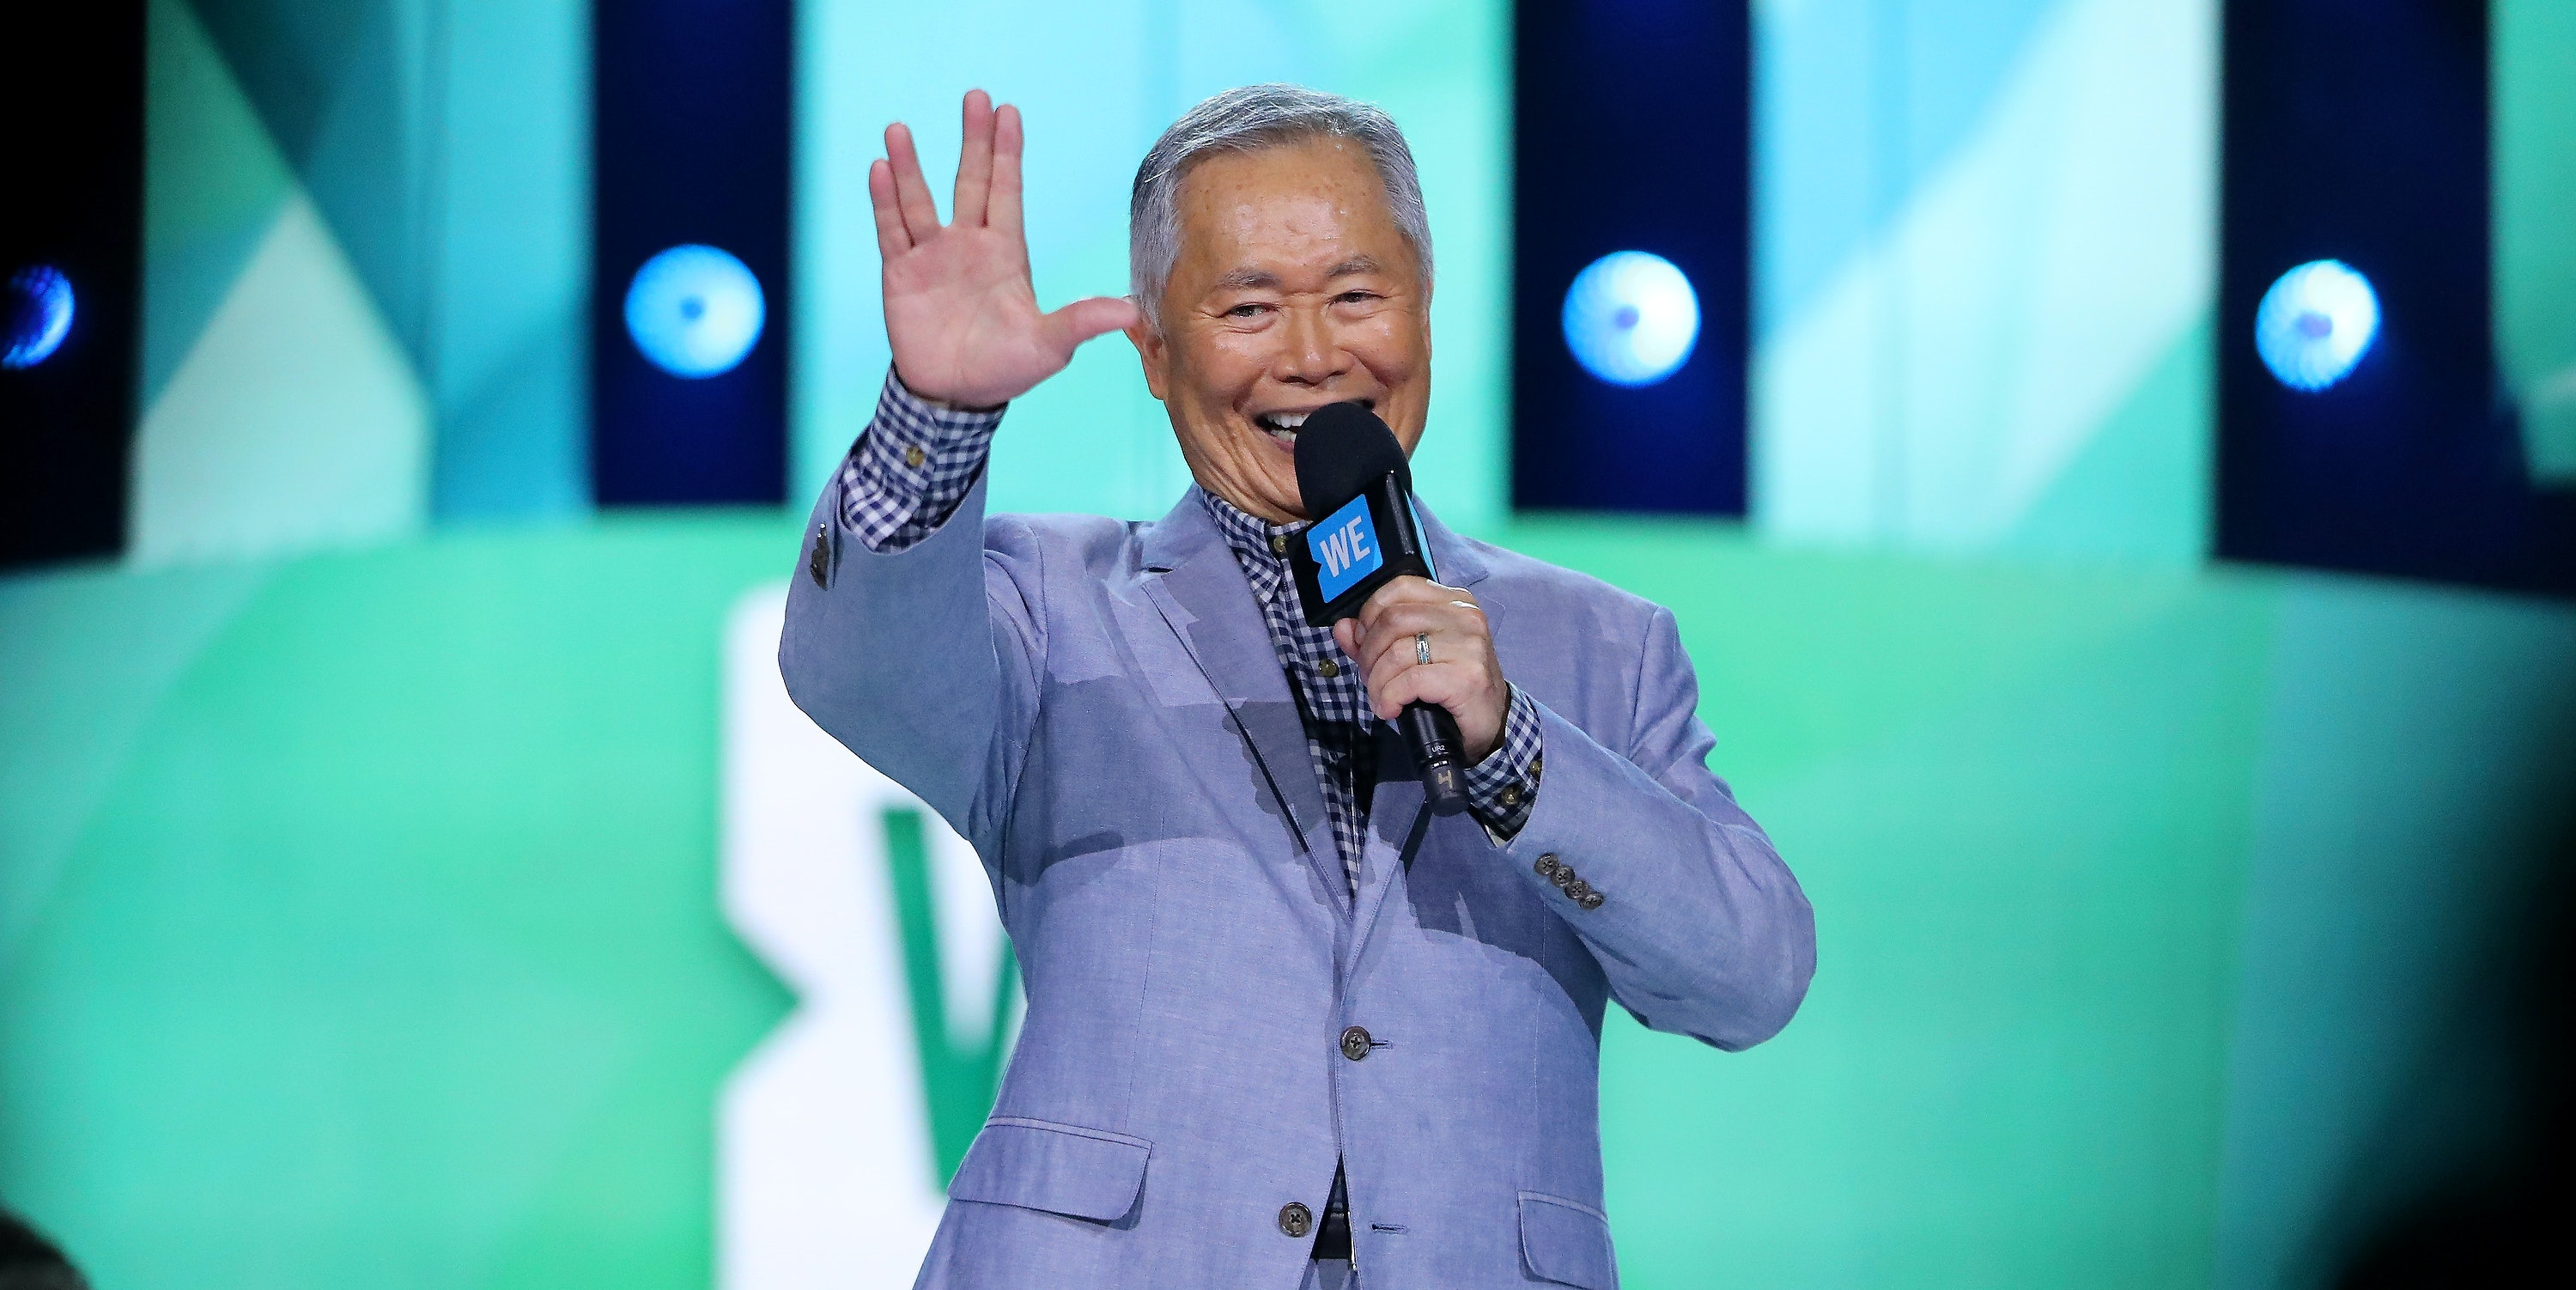 George Takei Doesn't Think the Gay Sulu Scene Was Gay Enough